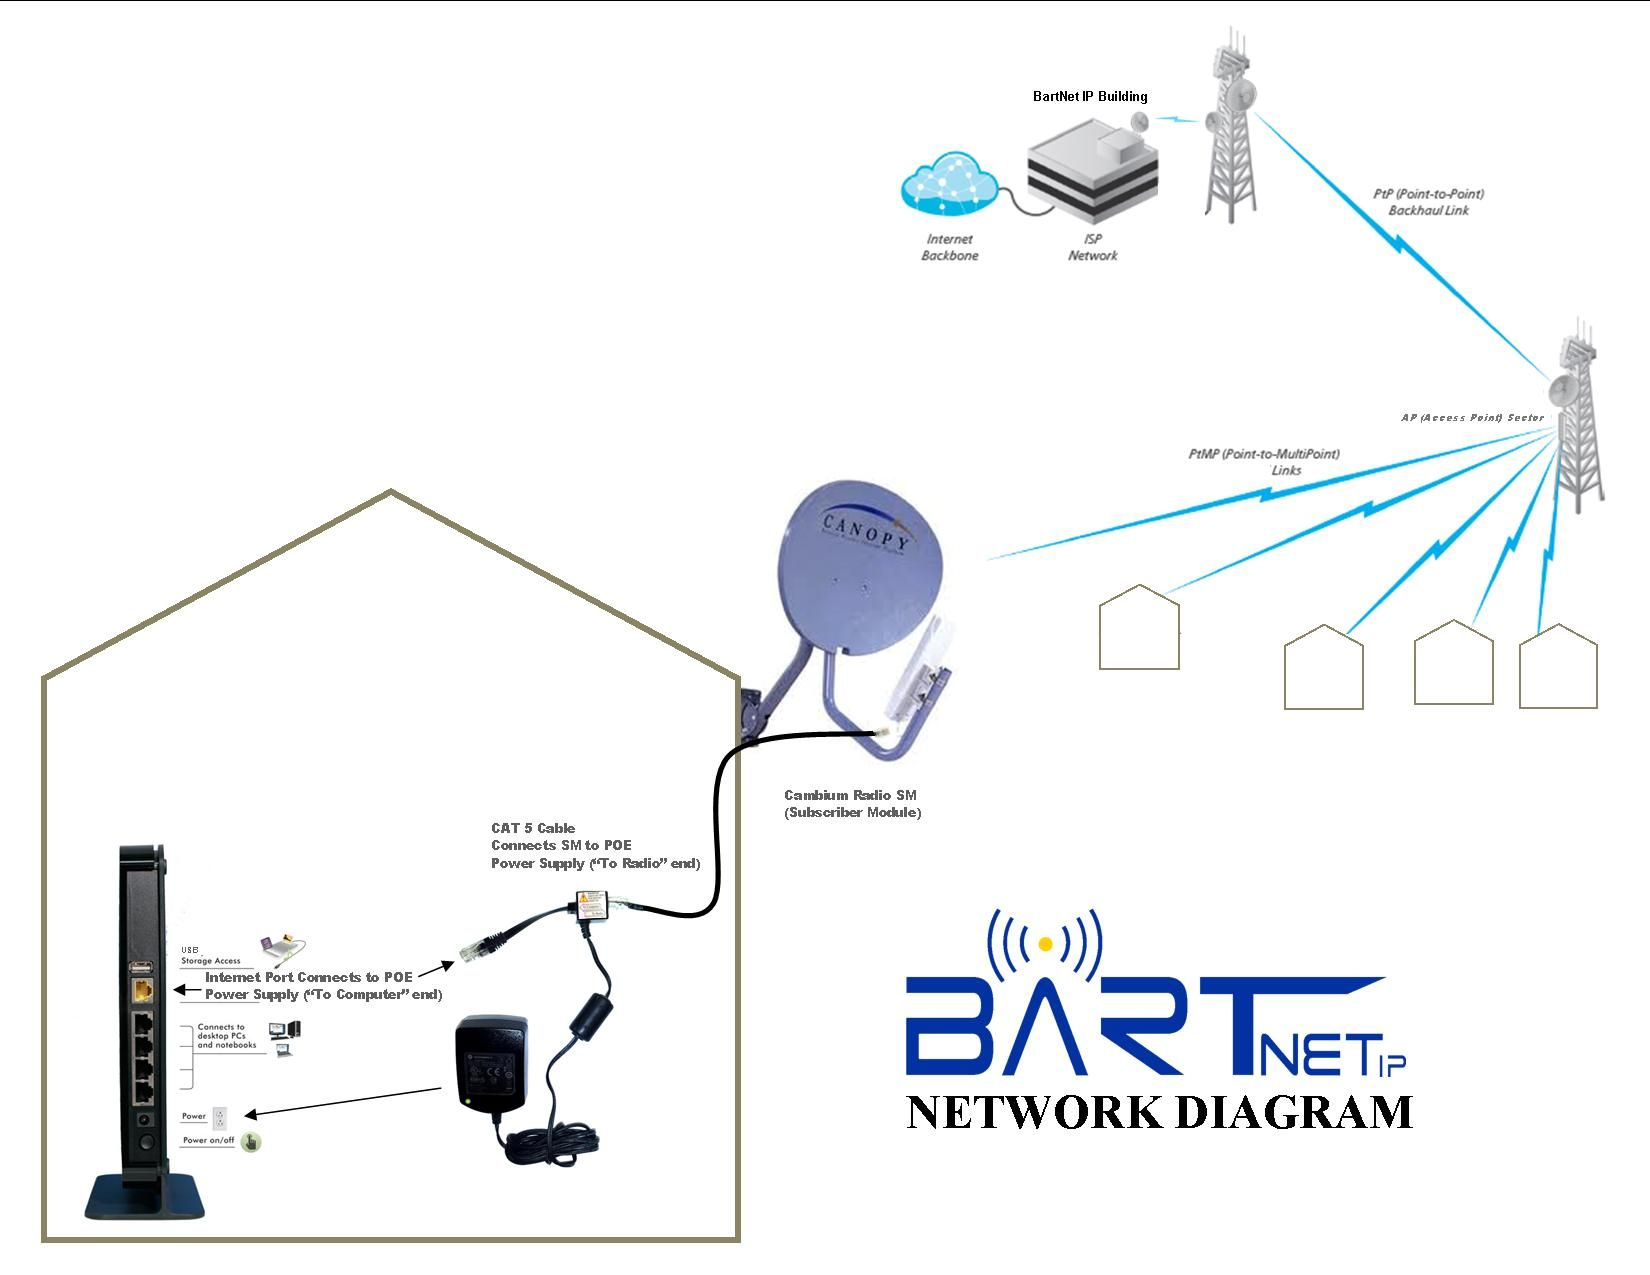 wireless work diagram wiring diagram wireless work diagram [ 1650 x 1275 Pixel ]